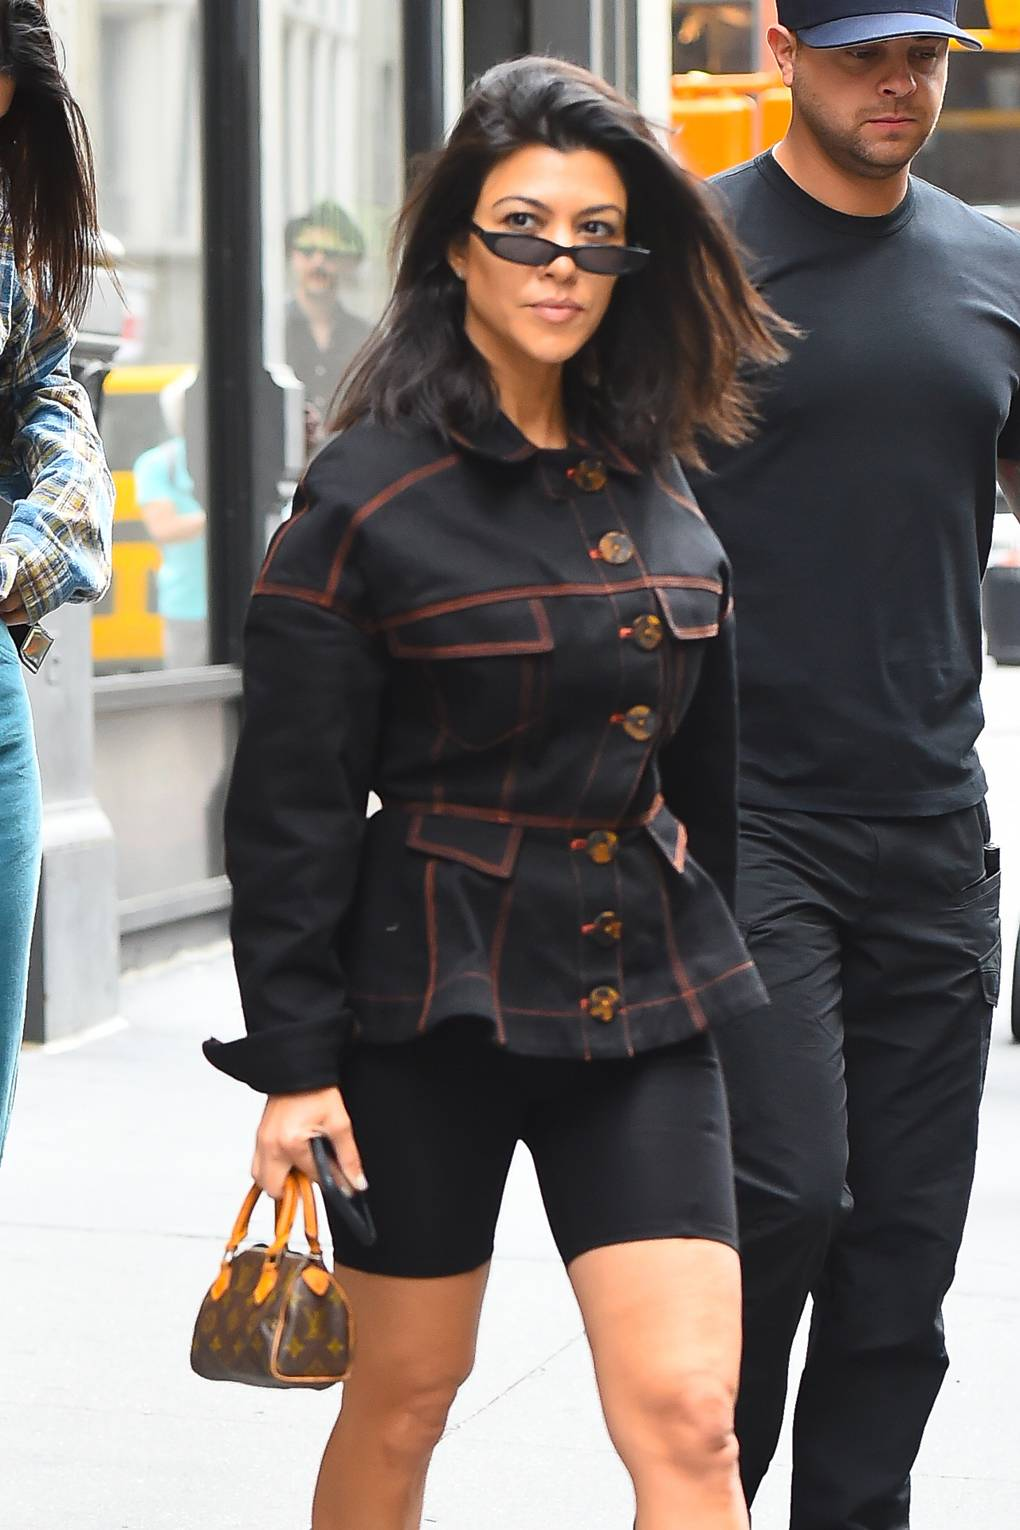 Image result for kardashians wearing cycling shorts 2019